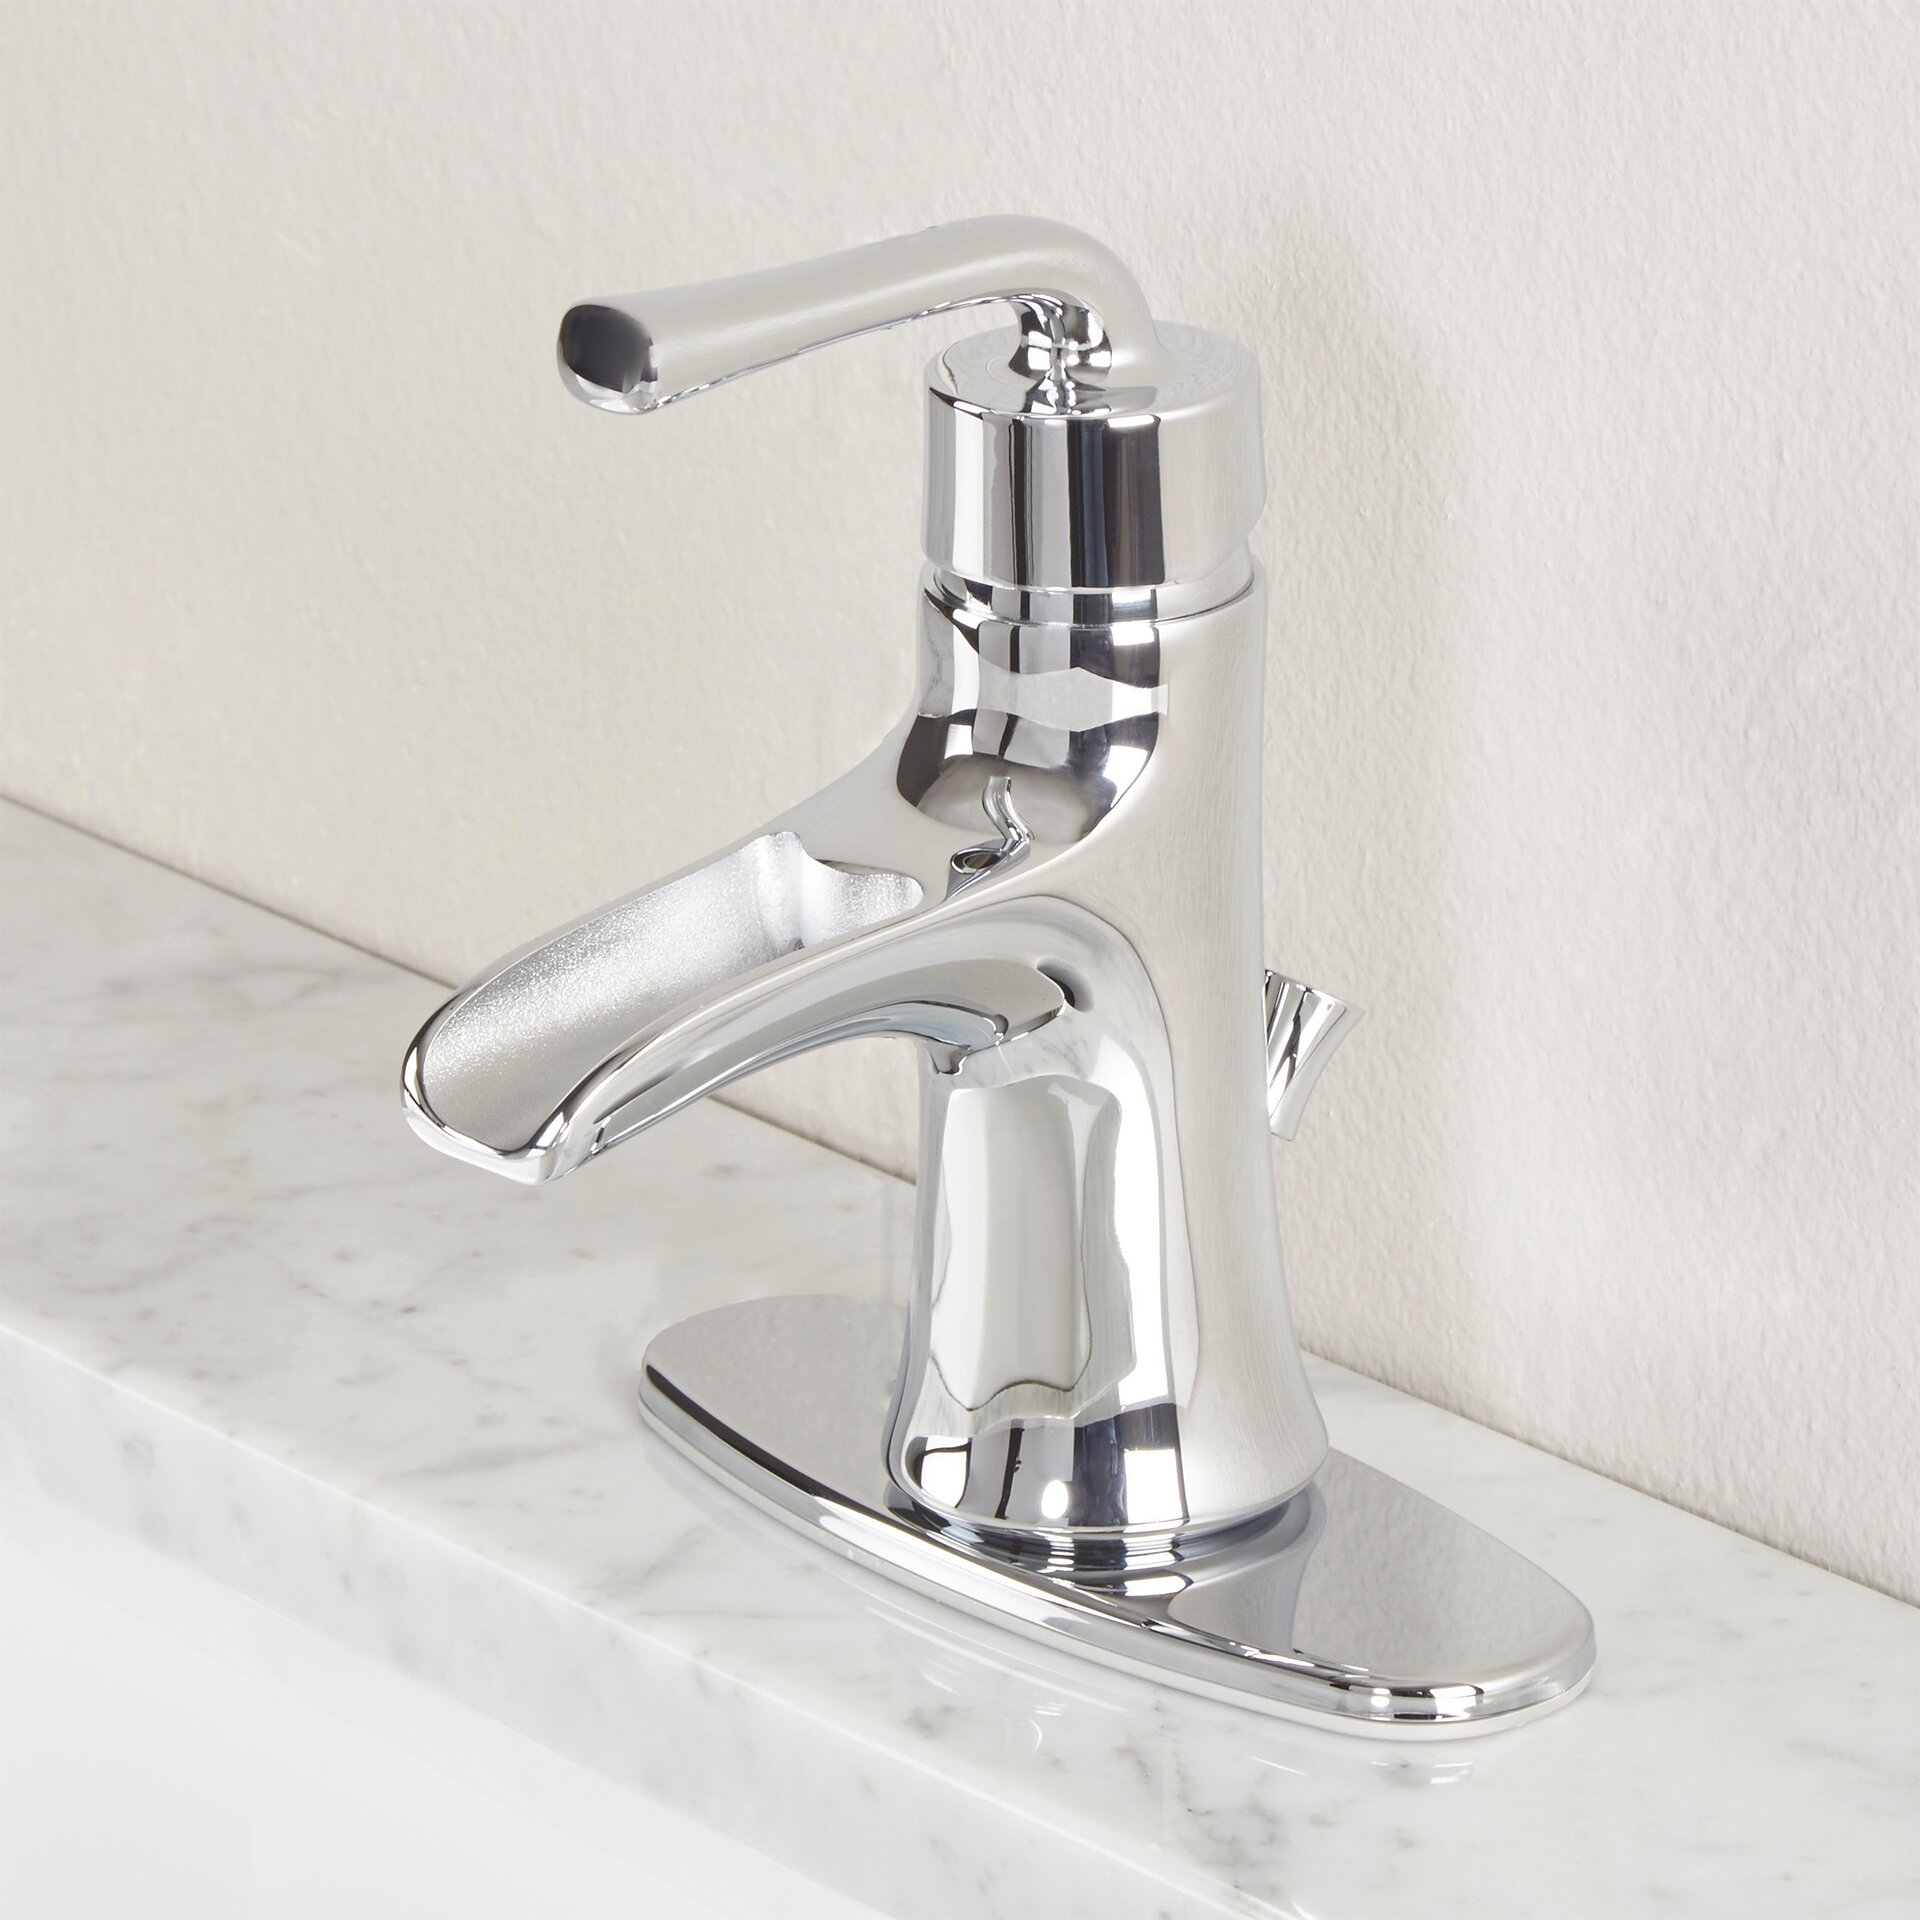 Premier faucet sanibel single handle bathroom faucet for Pictures of bathroom faucets